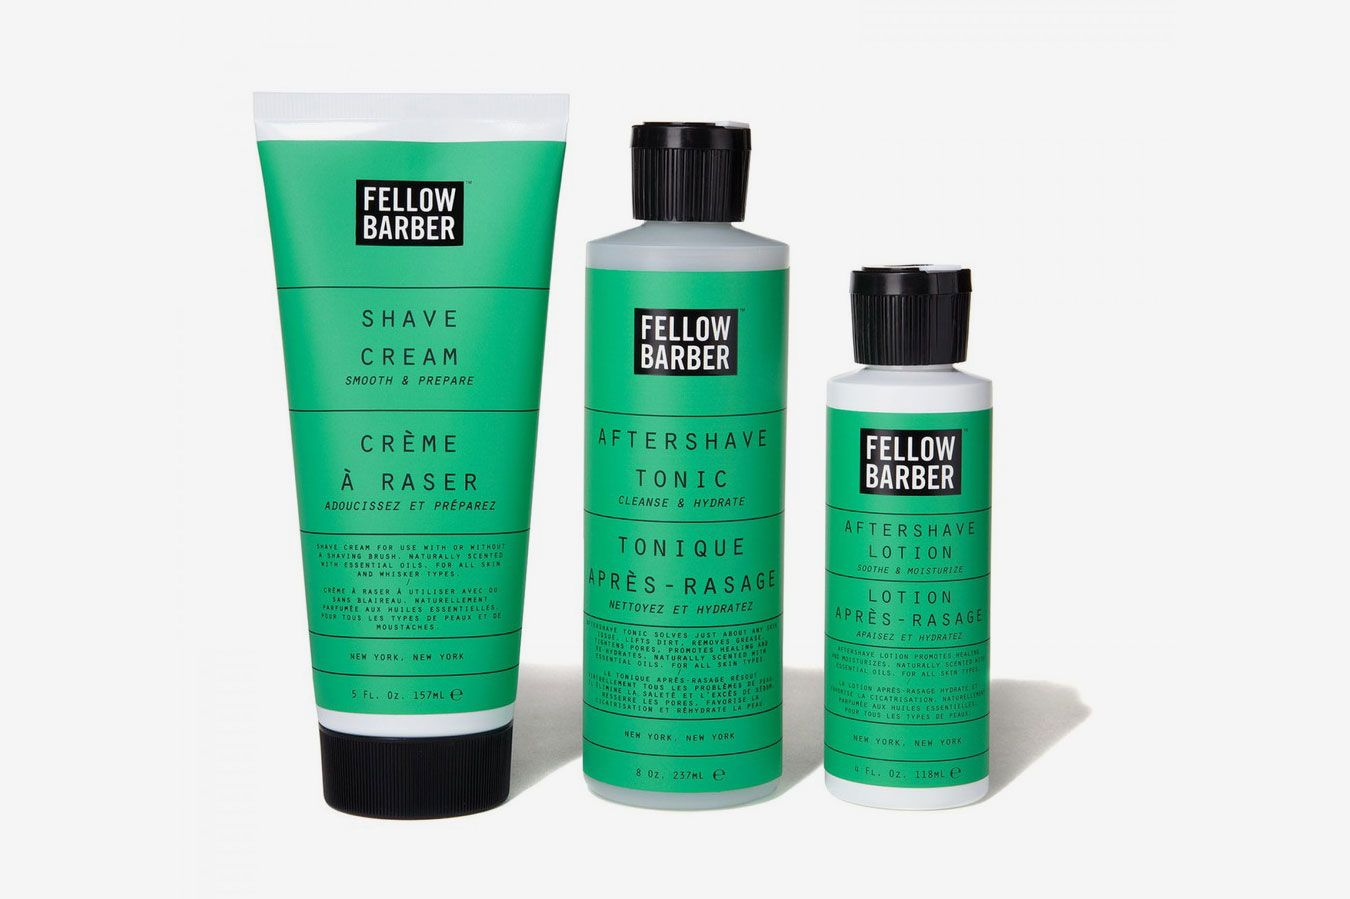 Fellow Barber Shave Regimen Kit